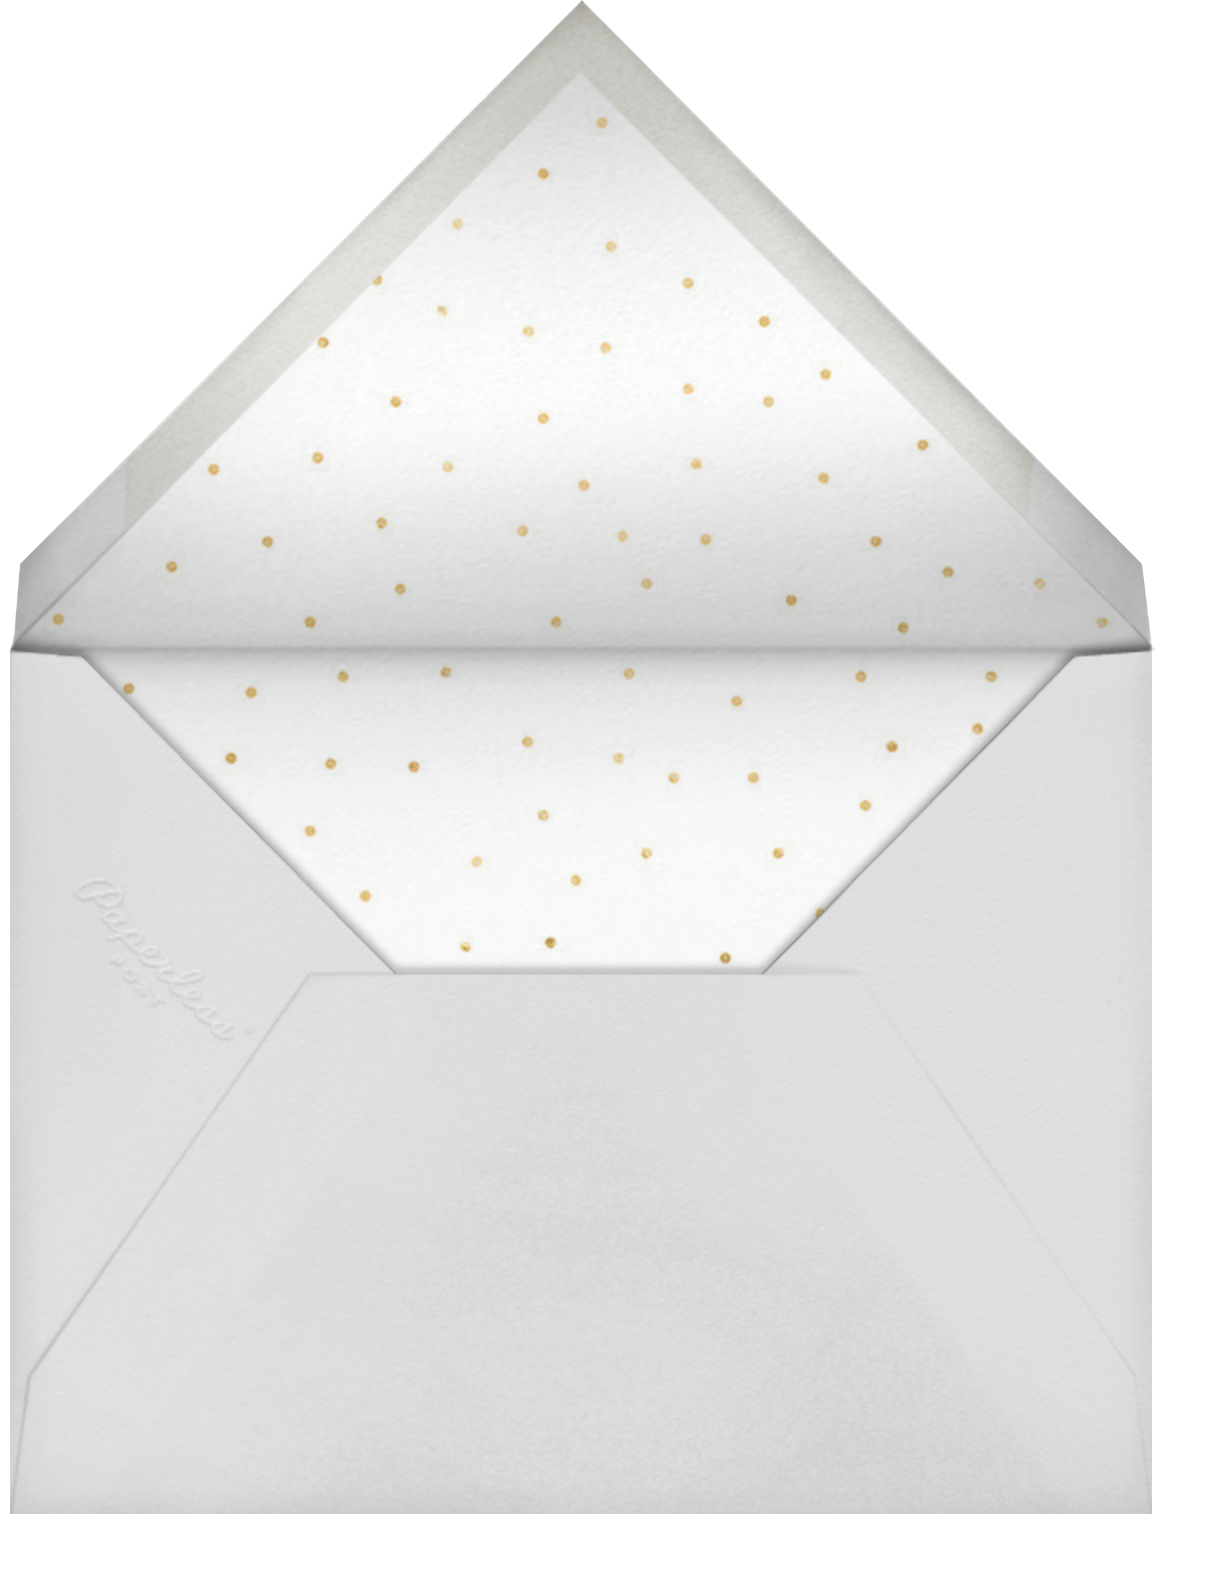 Rubell Photo - Paperless Post - Envelope